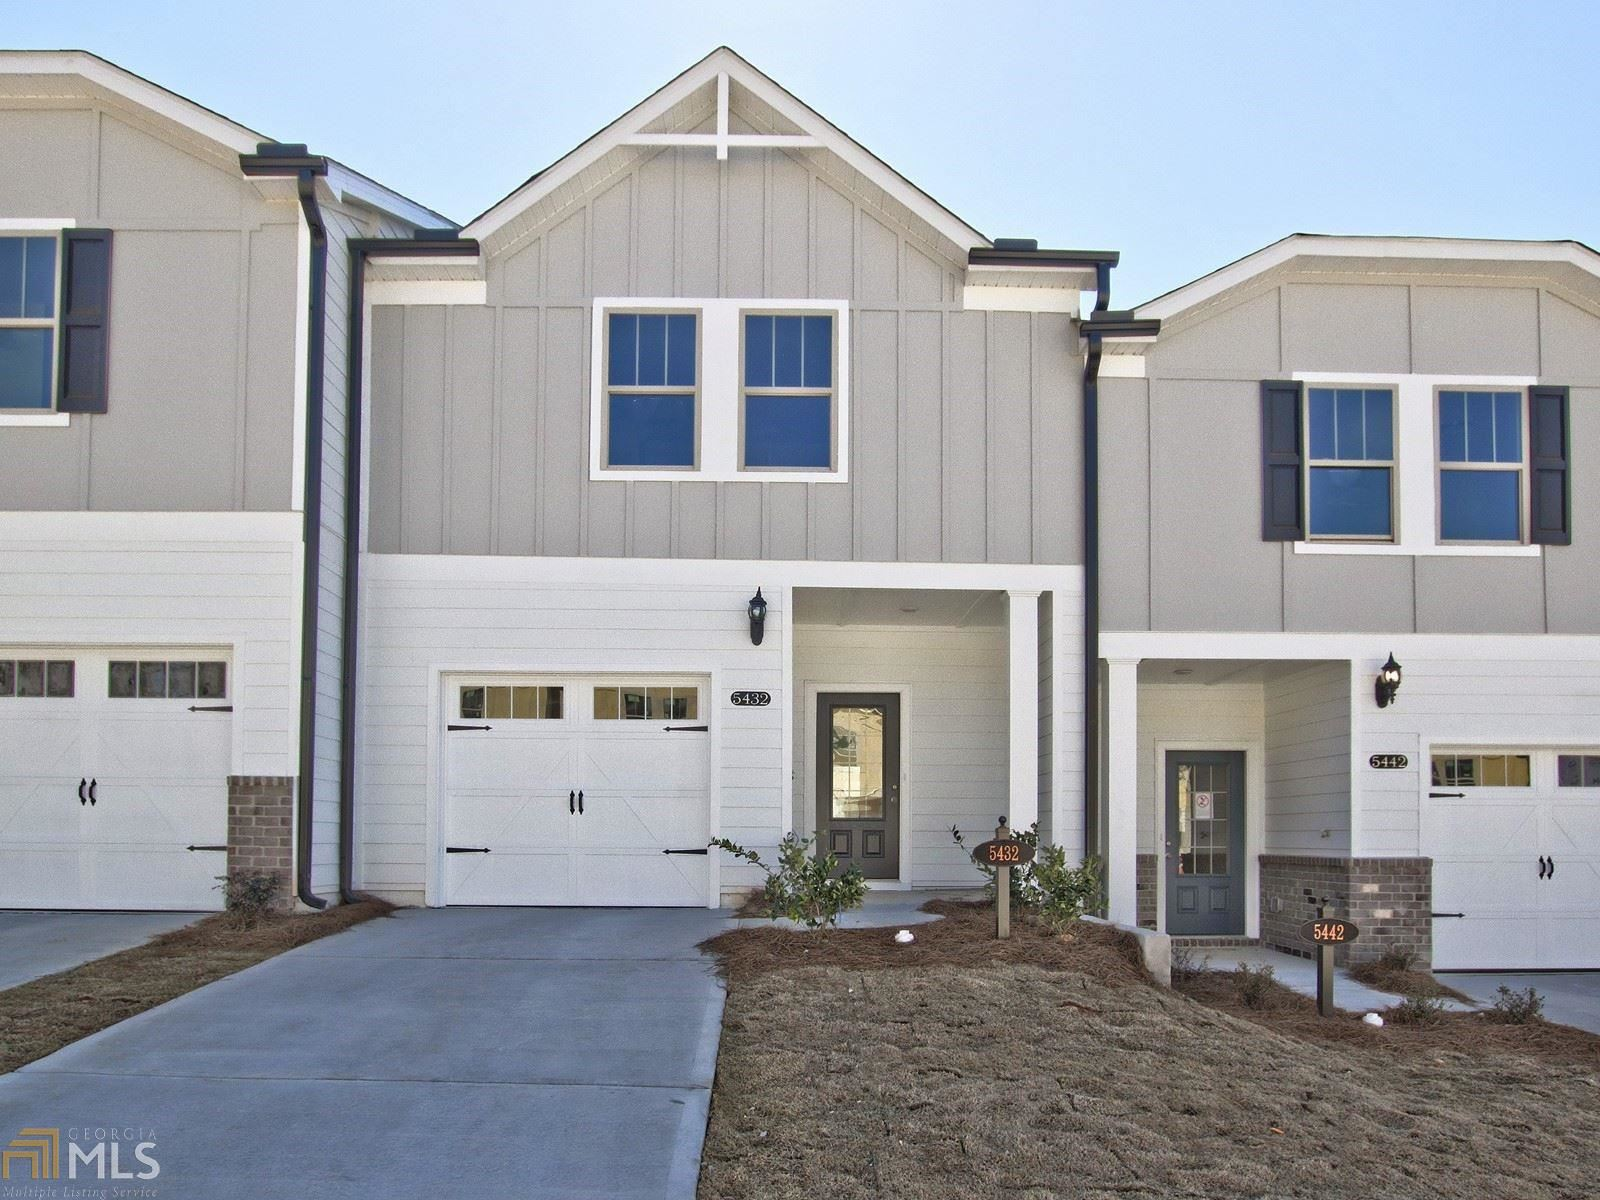 5432 Plain Field Ln, Lilburn, GA 30047 - MLS#: 8891606